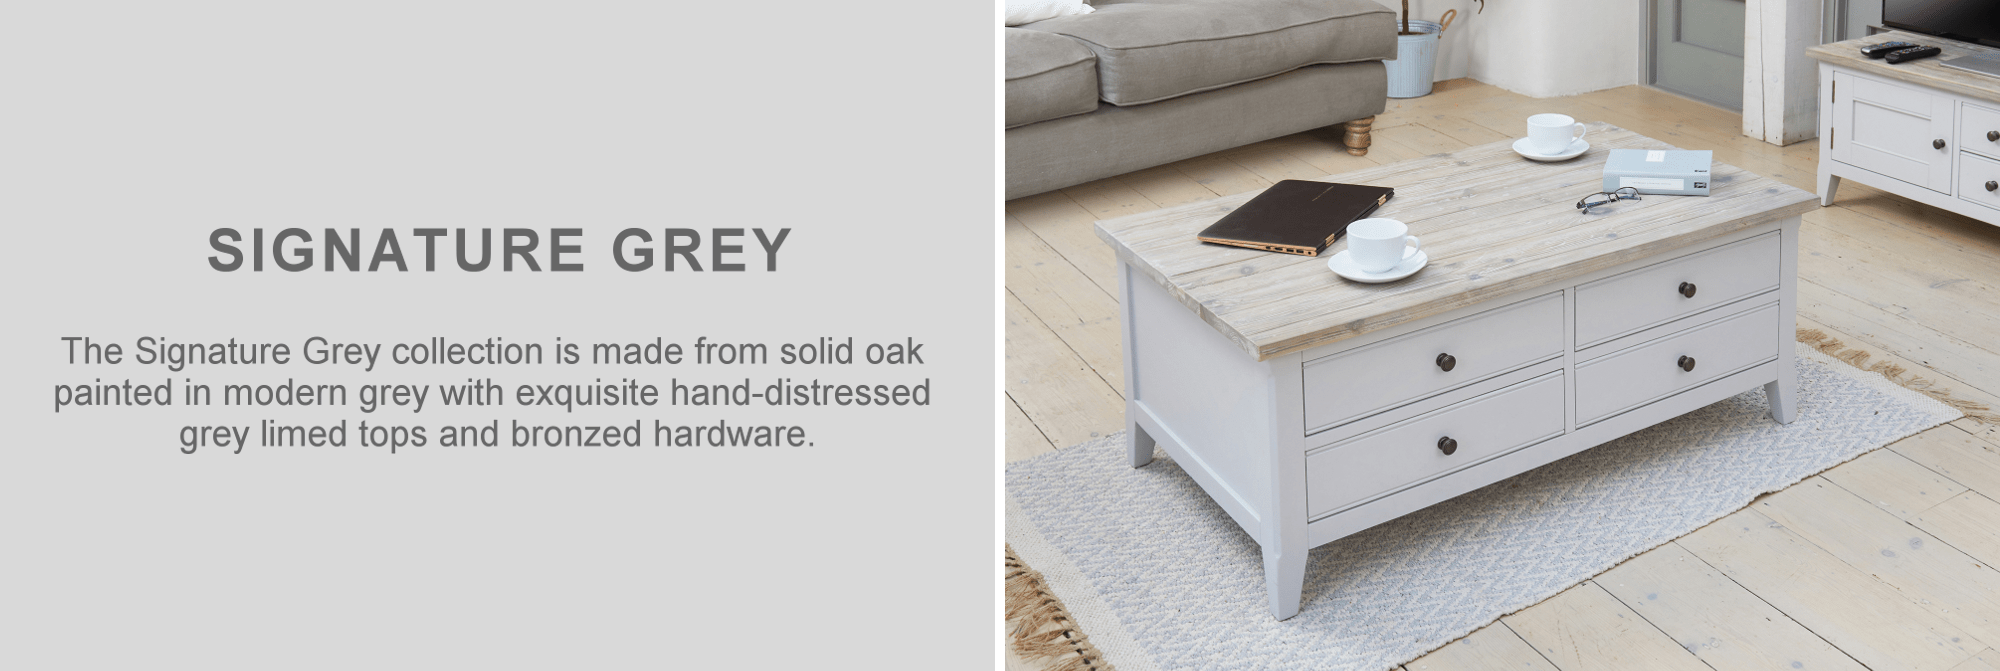 Signature grey painted oak coffeee table furniture in living room